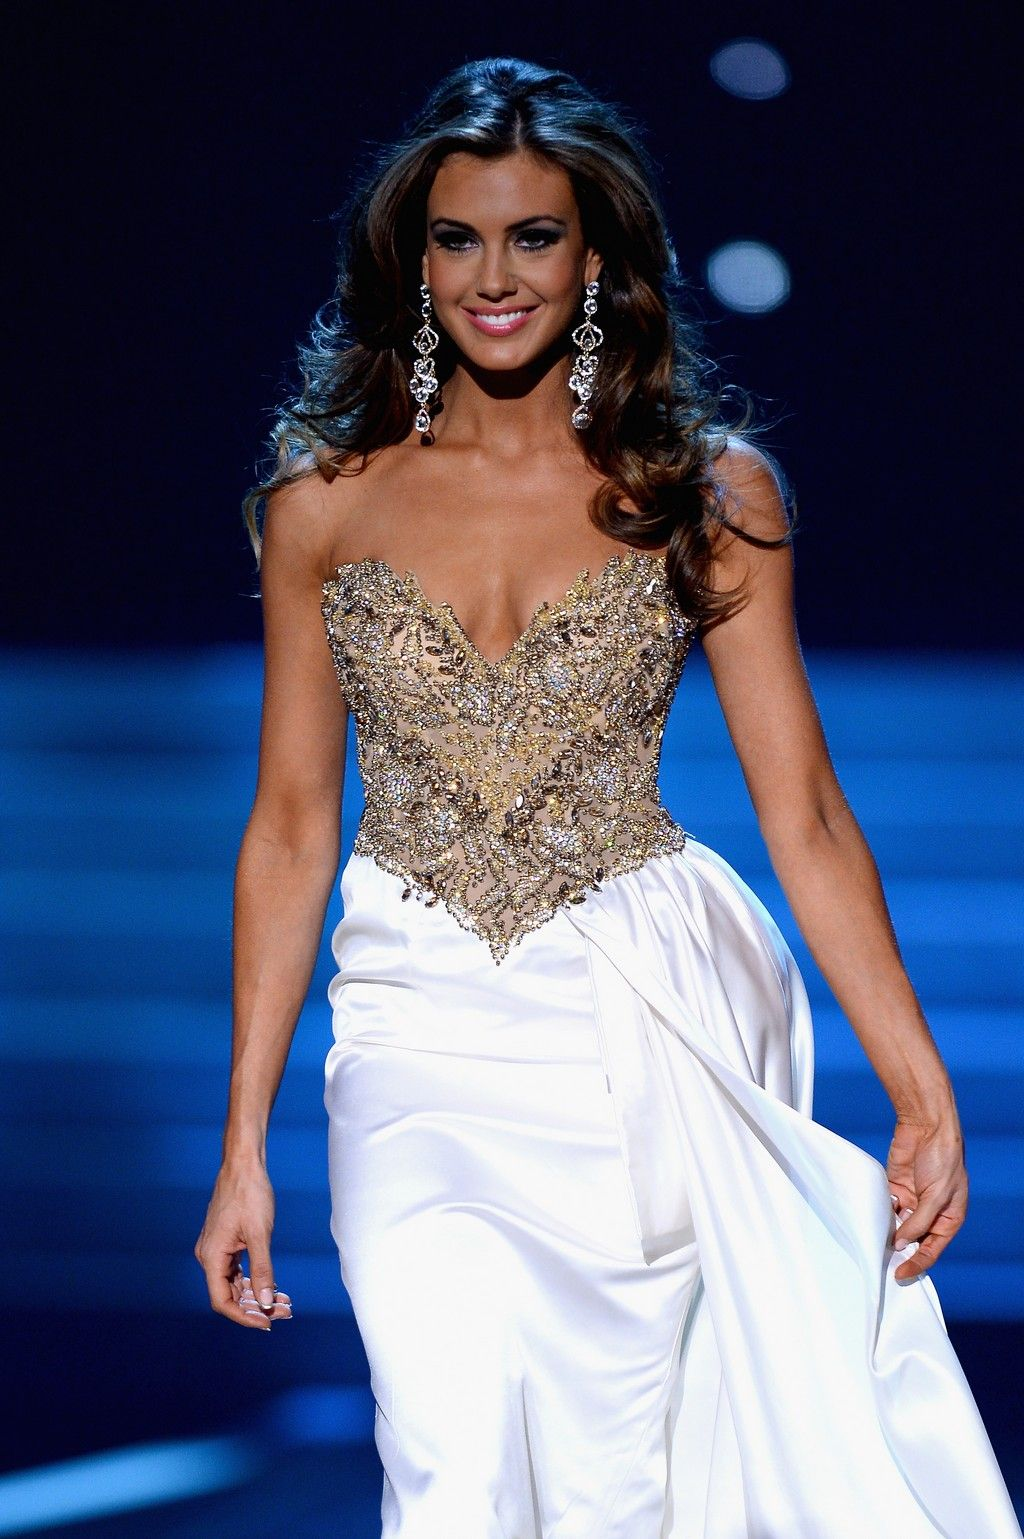 Miss USA Erin Brady on Pageant Fashion: It's Definitely Modernizing'